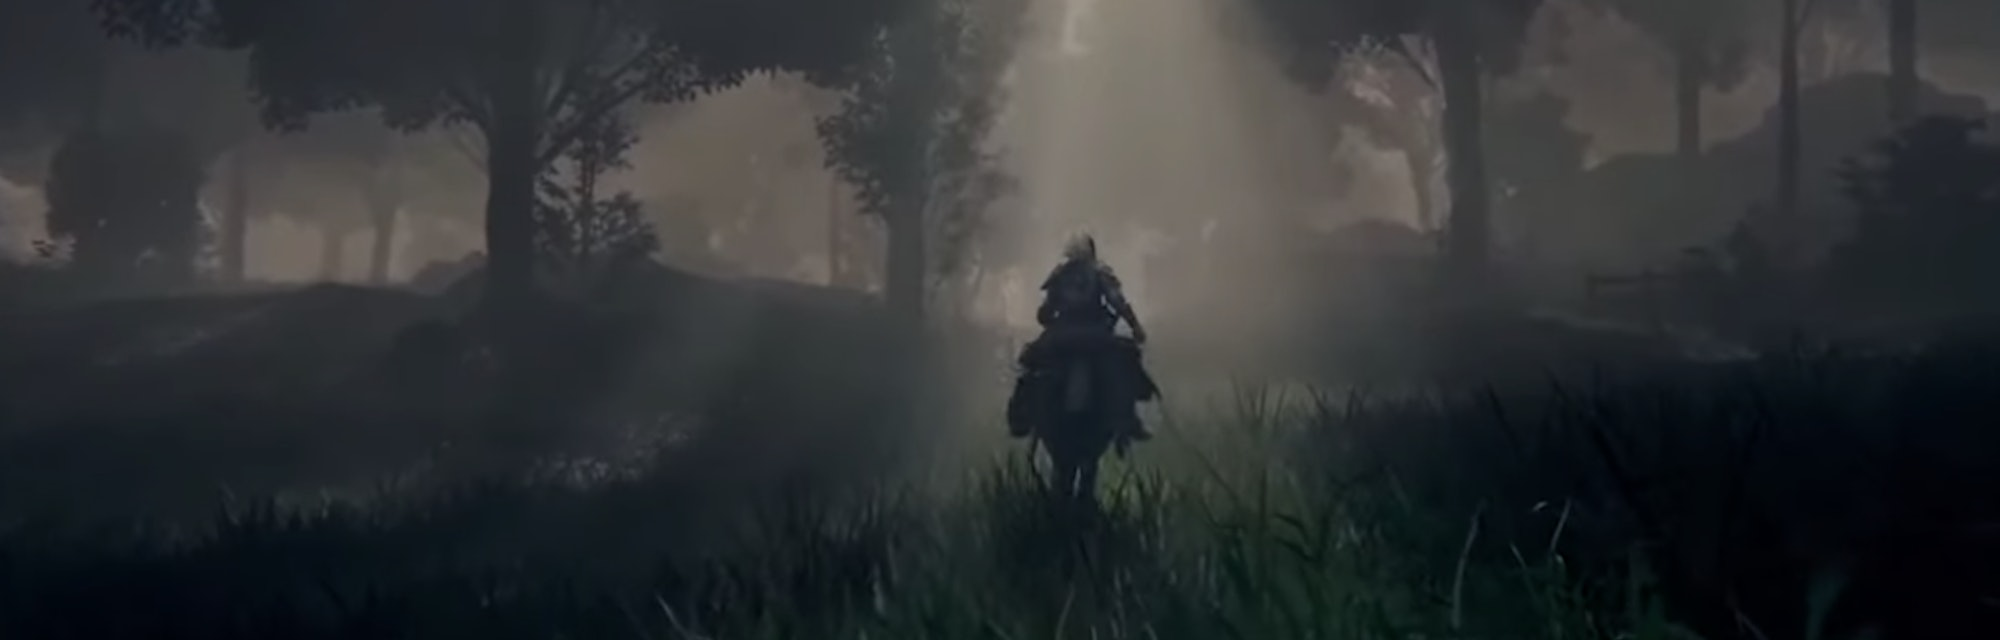 The RPG game 'Elden Rings' will be released in January 2022, according to a new trailer.